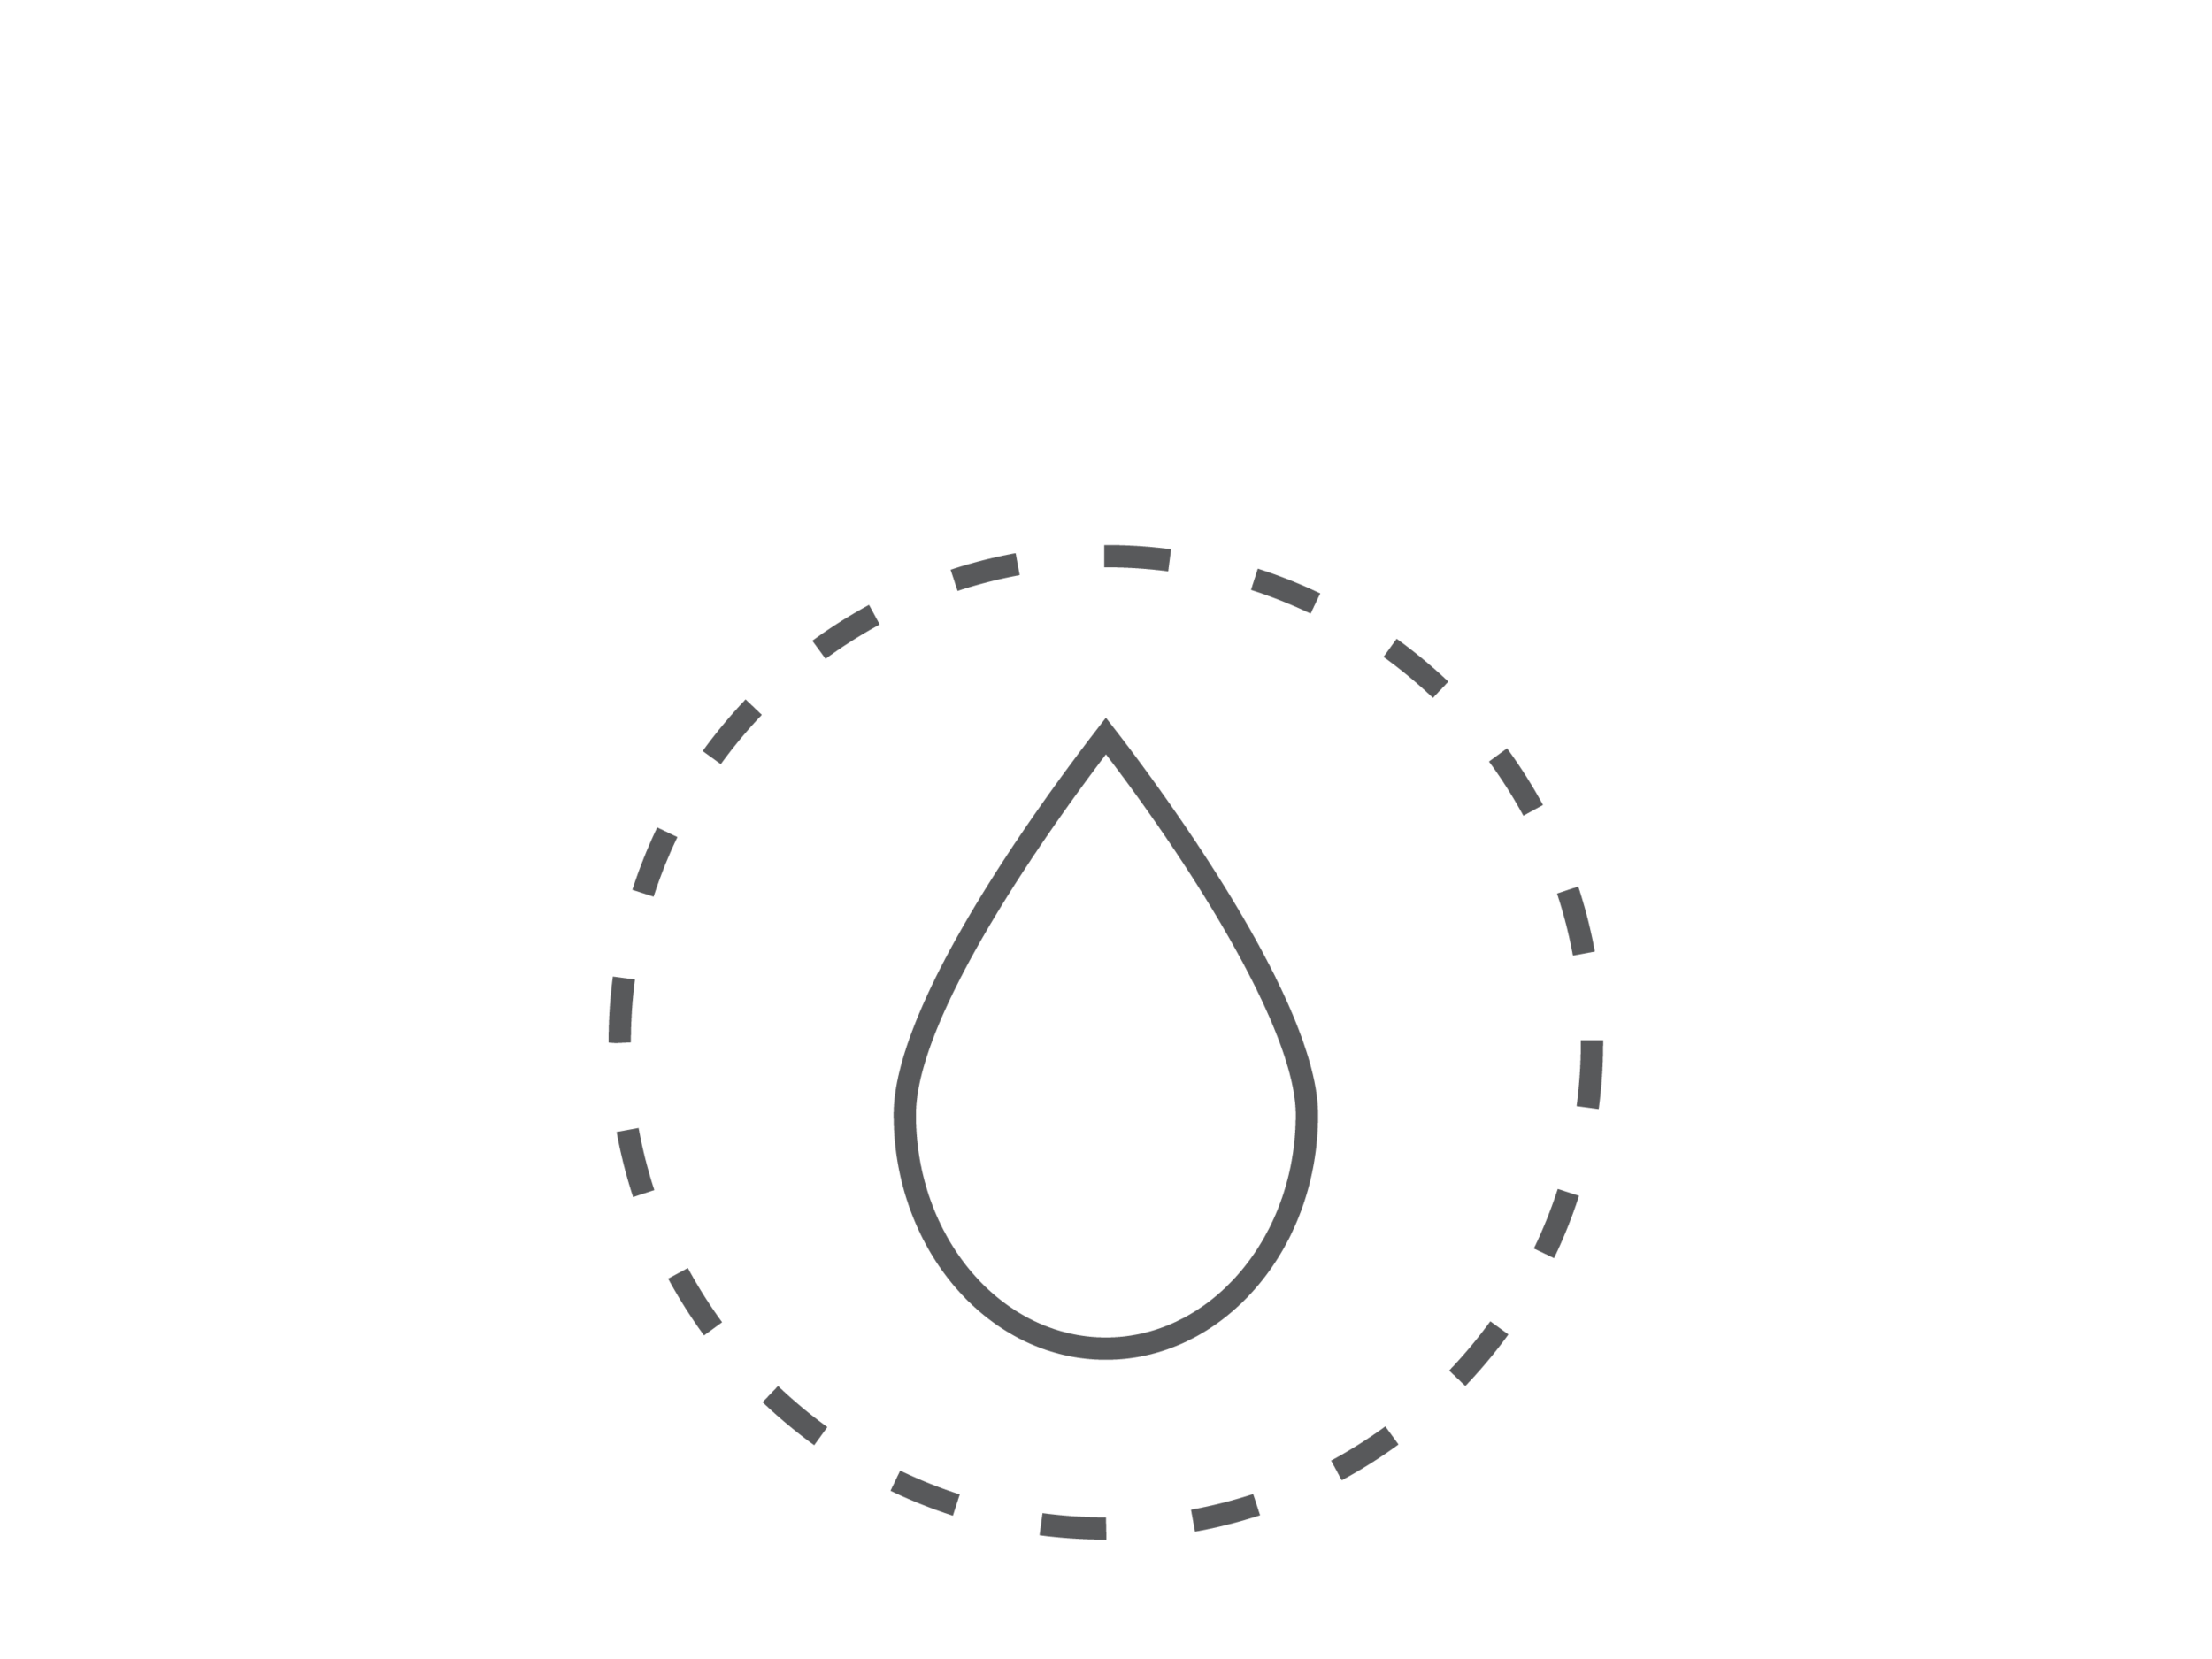 Drip-01-01.png